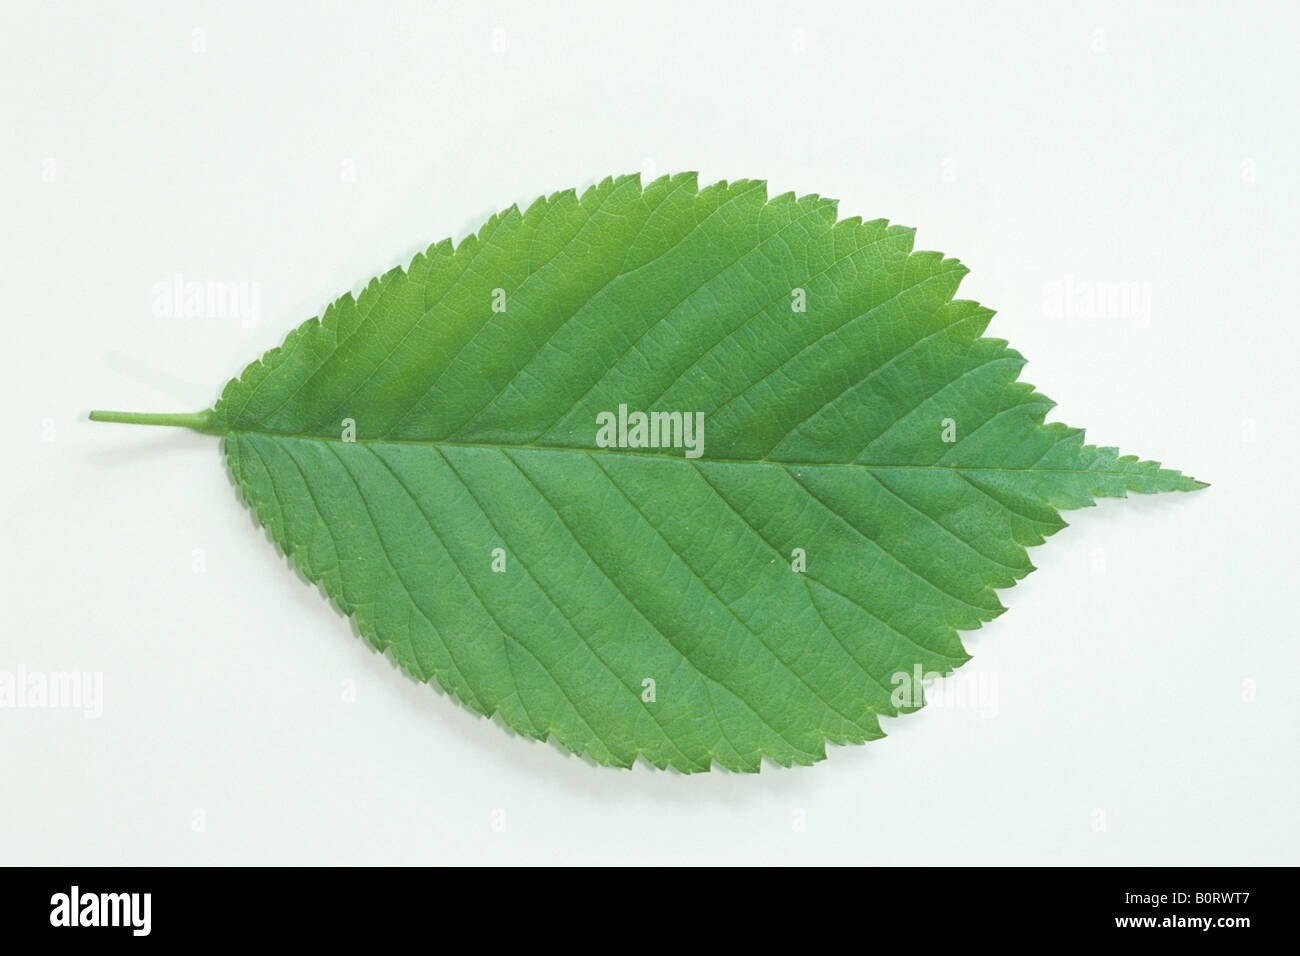 Orme montagnard (Ulmus glabra), feuille, studio photo Photo Stock